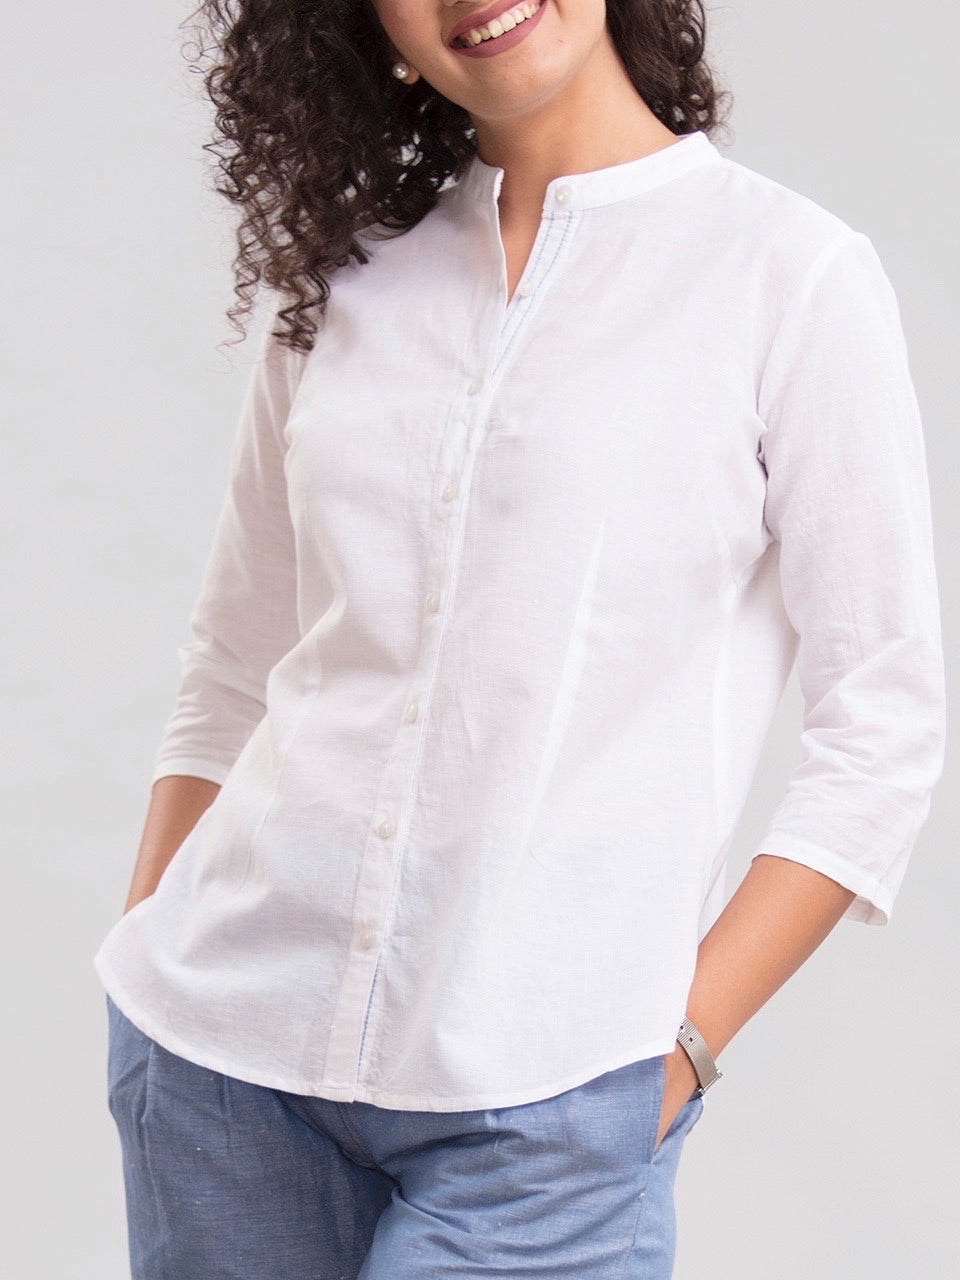 Mandarin Collared Linen Shirt - White